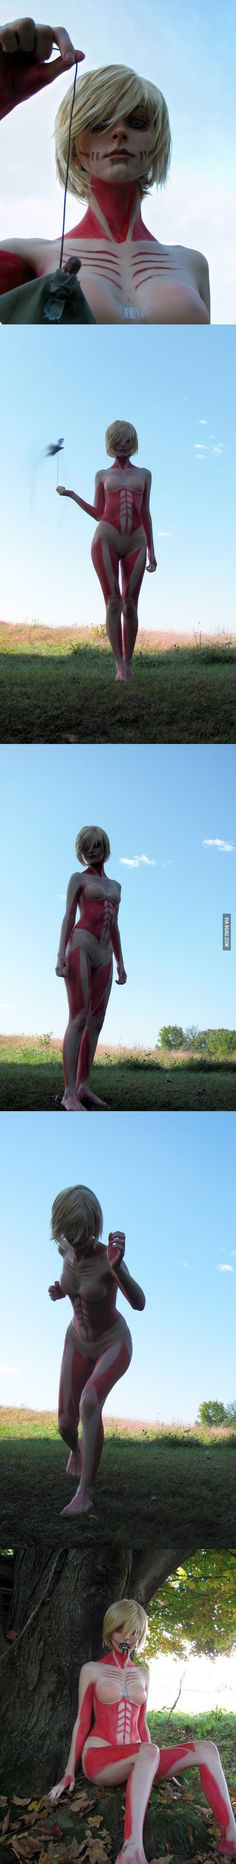 Amazing Attack on Titan cosplay. 9gag.com